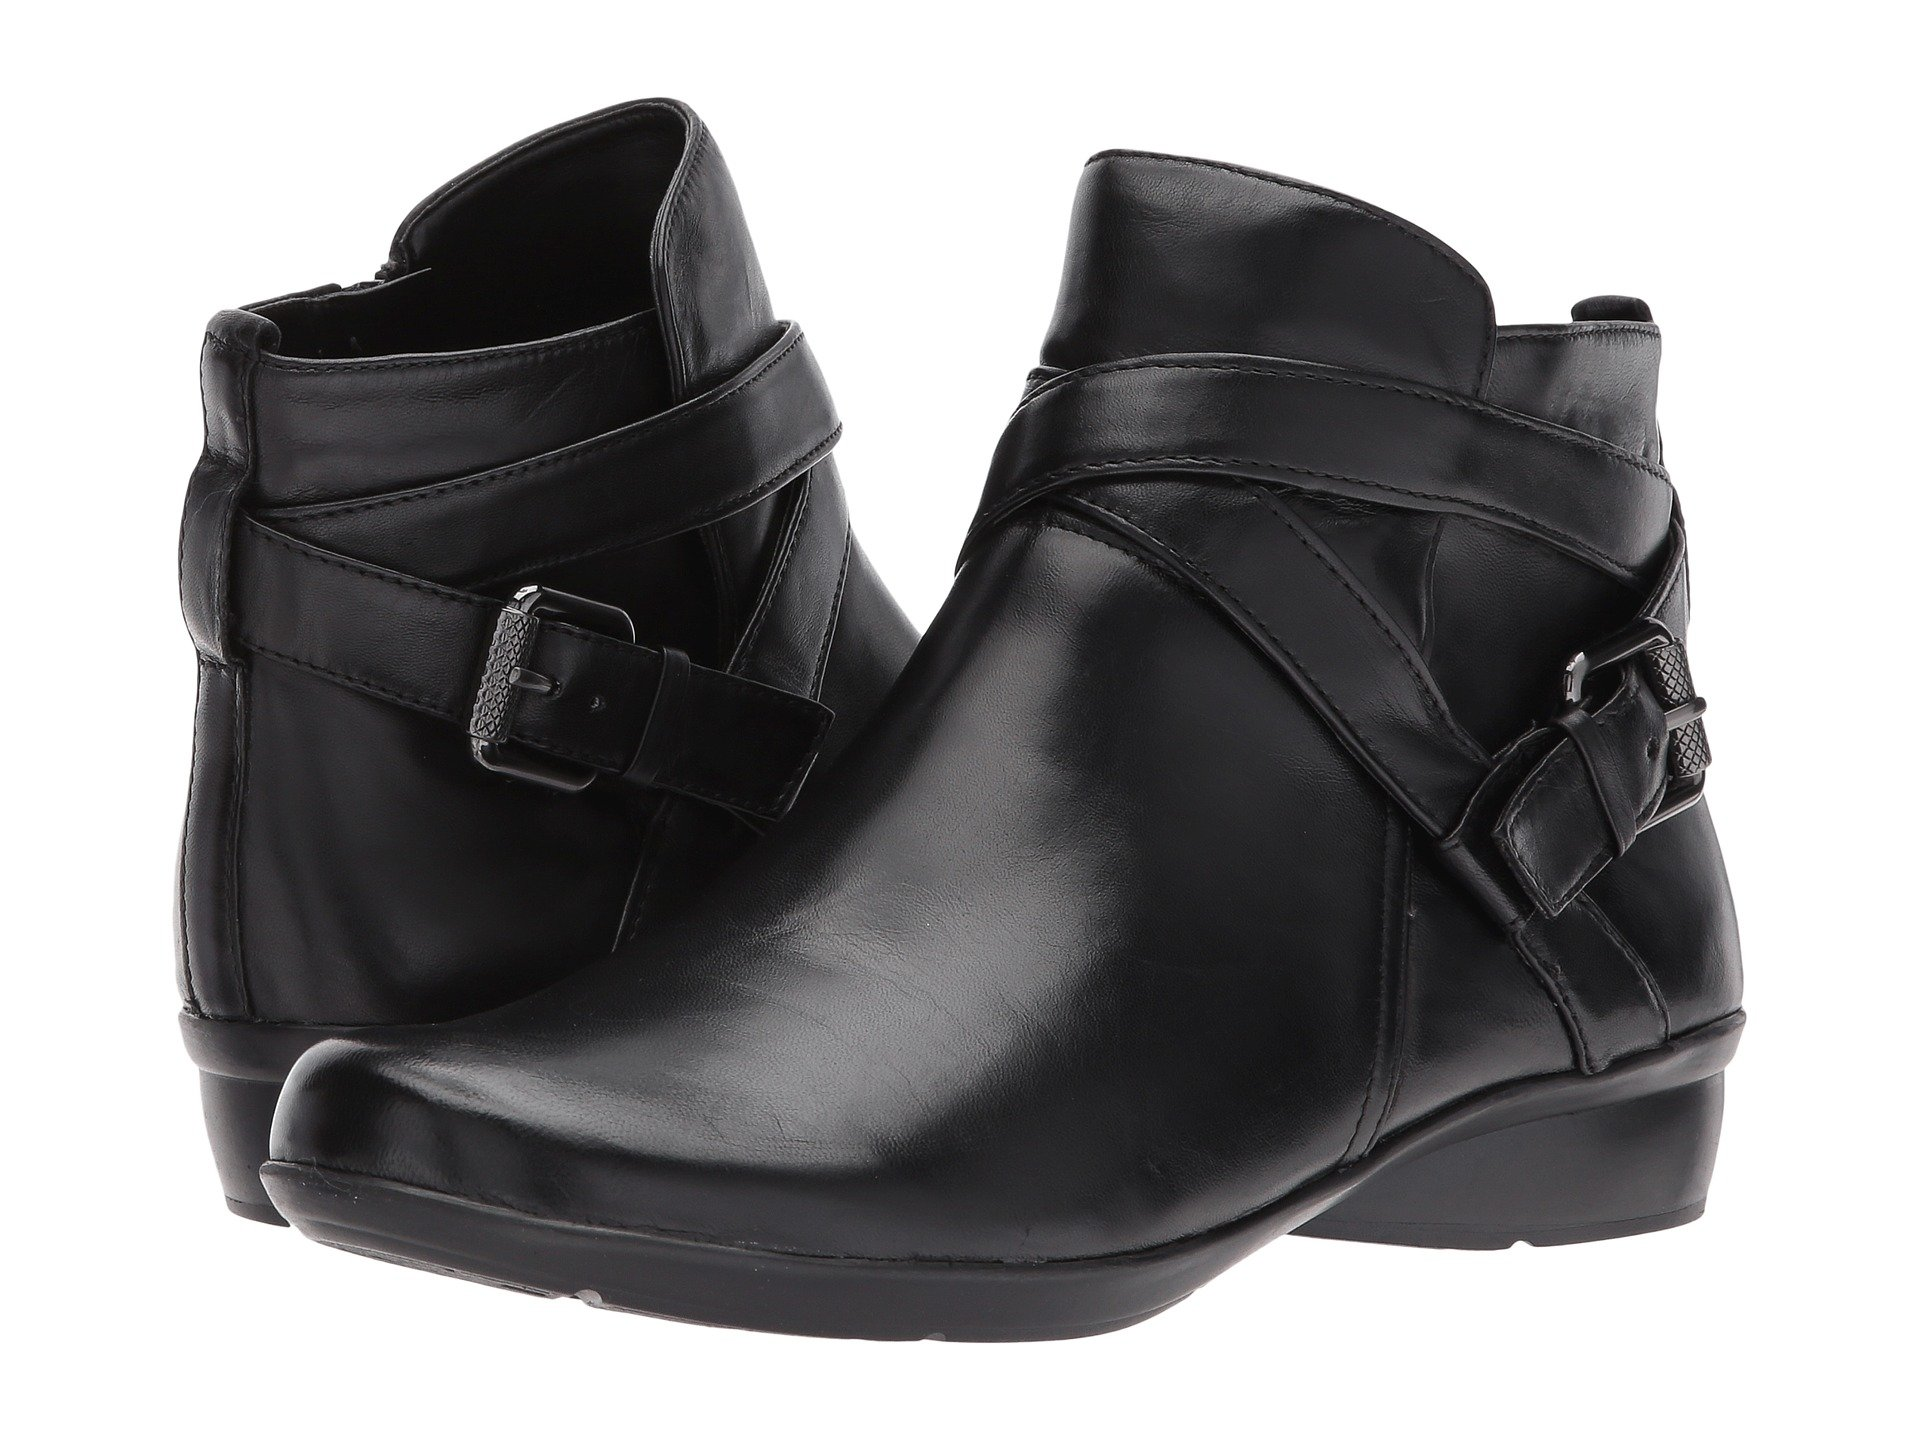 a129c89d04e Women s Ankle Boots and Booties + FREE SHIPPING